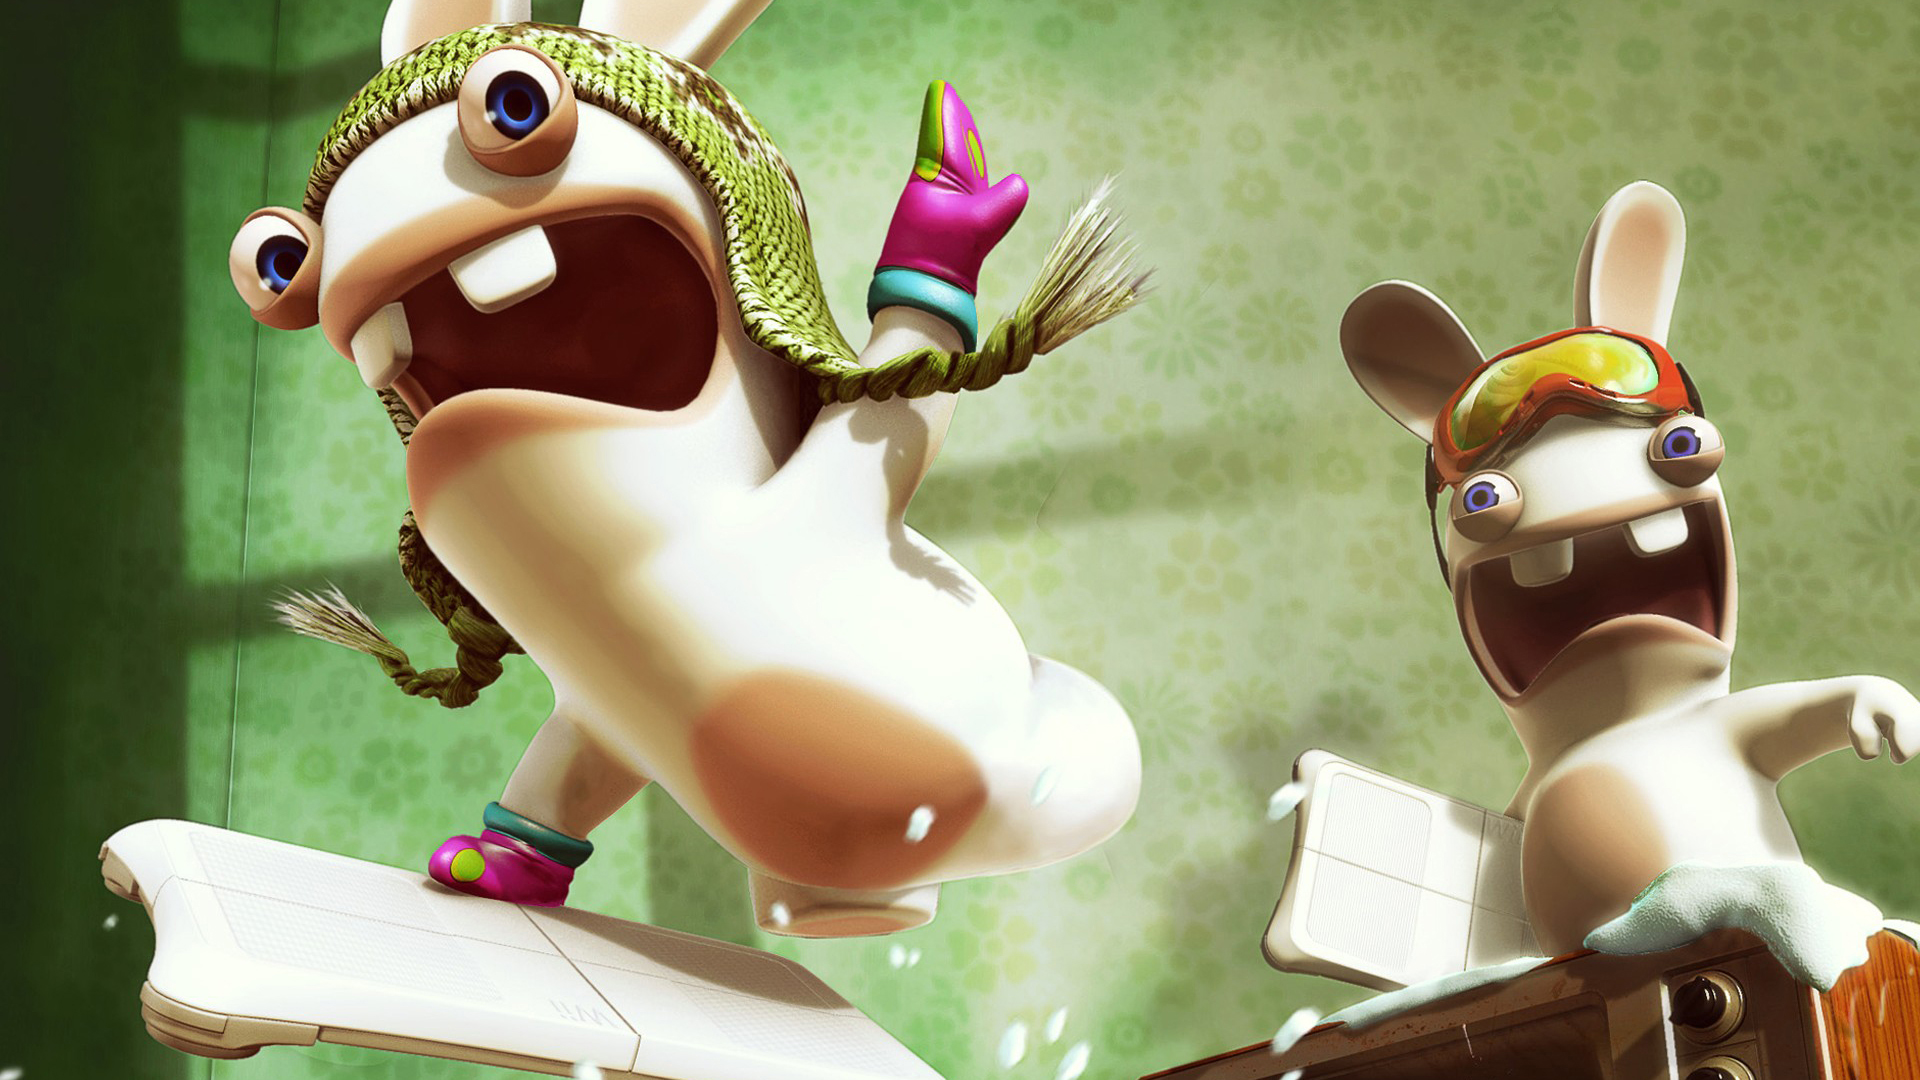 Funny 3d Cartoon Wallpaper 19201080 24126 HD Wallpaper Res 1920x1080